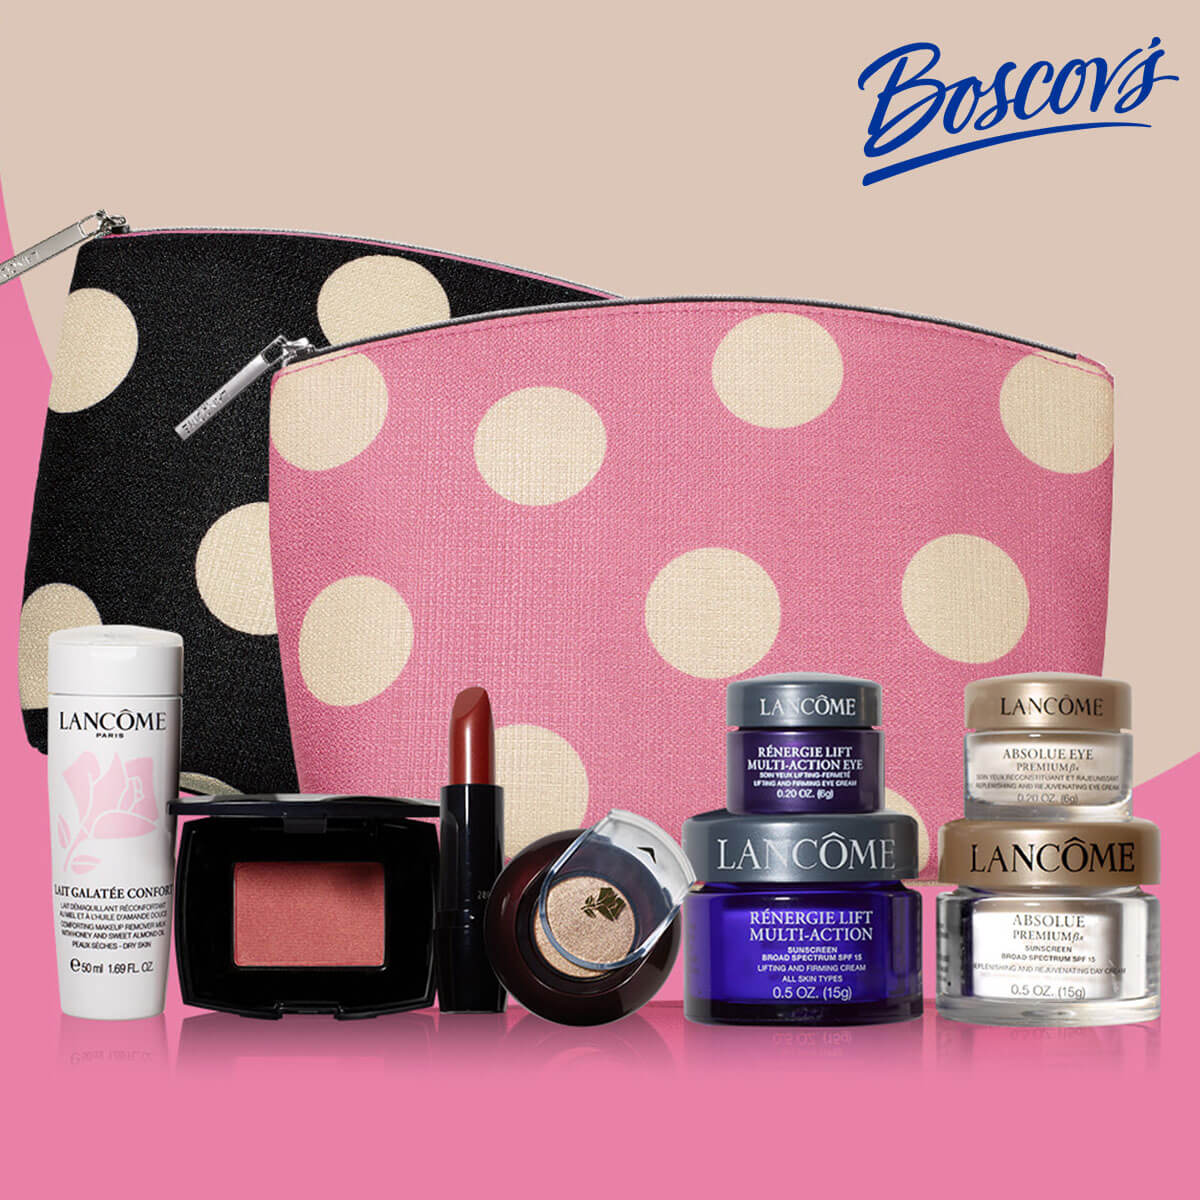 Photo of Lancôme cosmetic products and two small toiletry bags: one pink and one black with large polka dots.